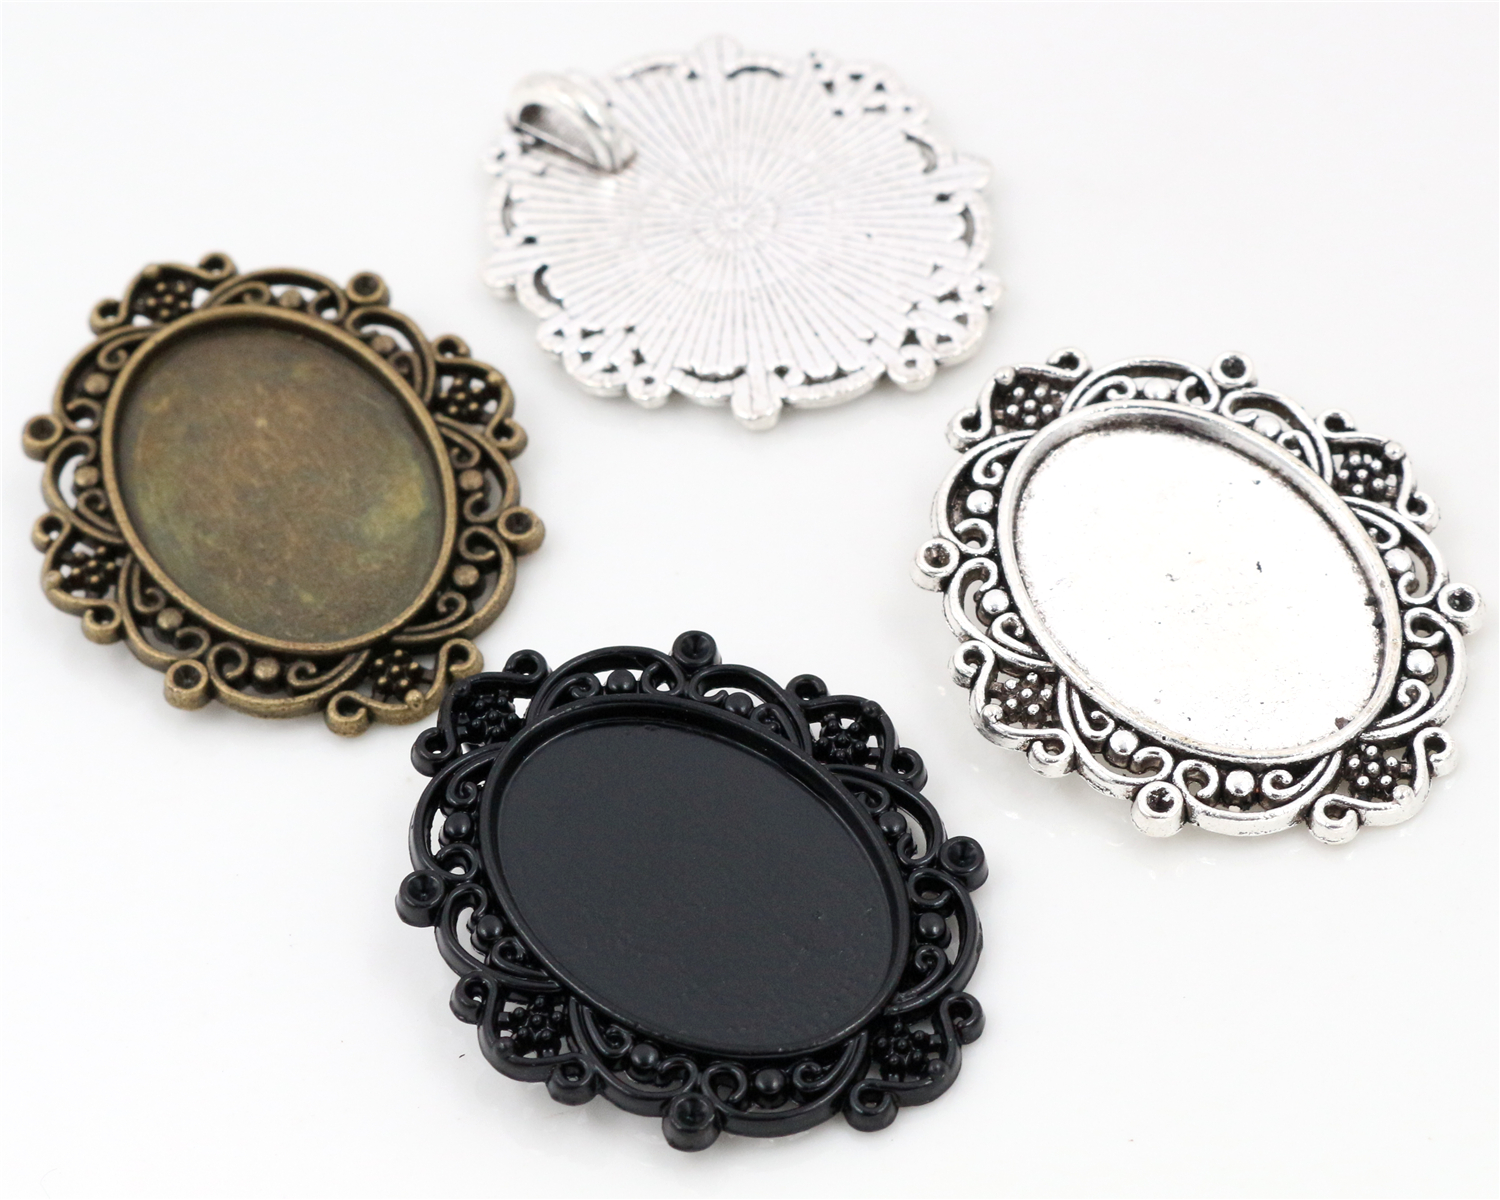 4pcs/Lot Fit 18x25mm Inner Size 3 Colors Plated Flowers Style Cameo Cabochon Base Setting Charms Pendant necklace findings4pcs/Lot Fit 18x25mm Inner Size 3 Colors Plated Flowers Style Cameo Cabochon Base Setting Charms Pendant necklace findings